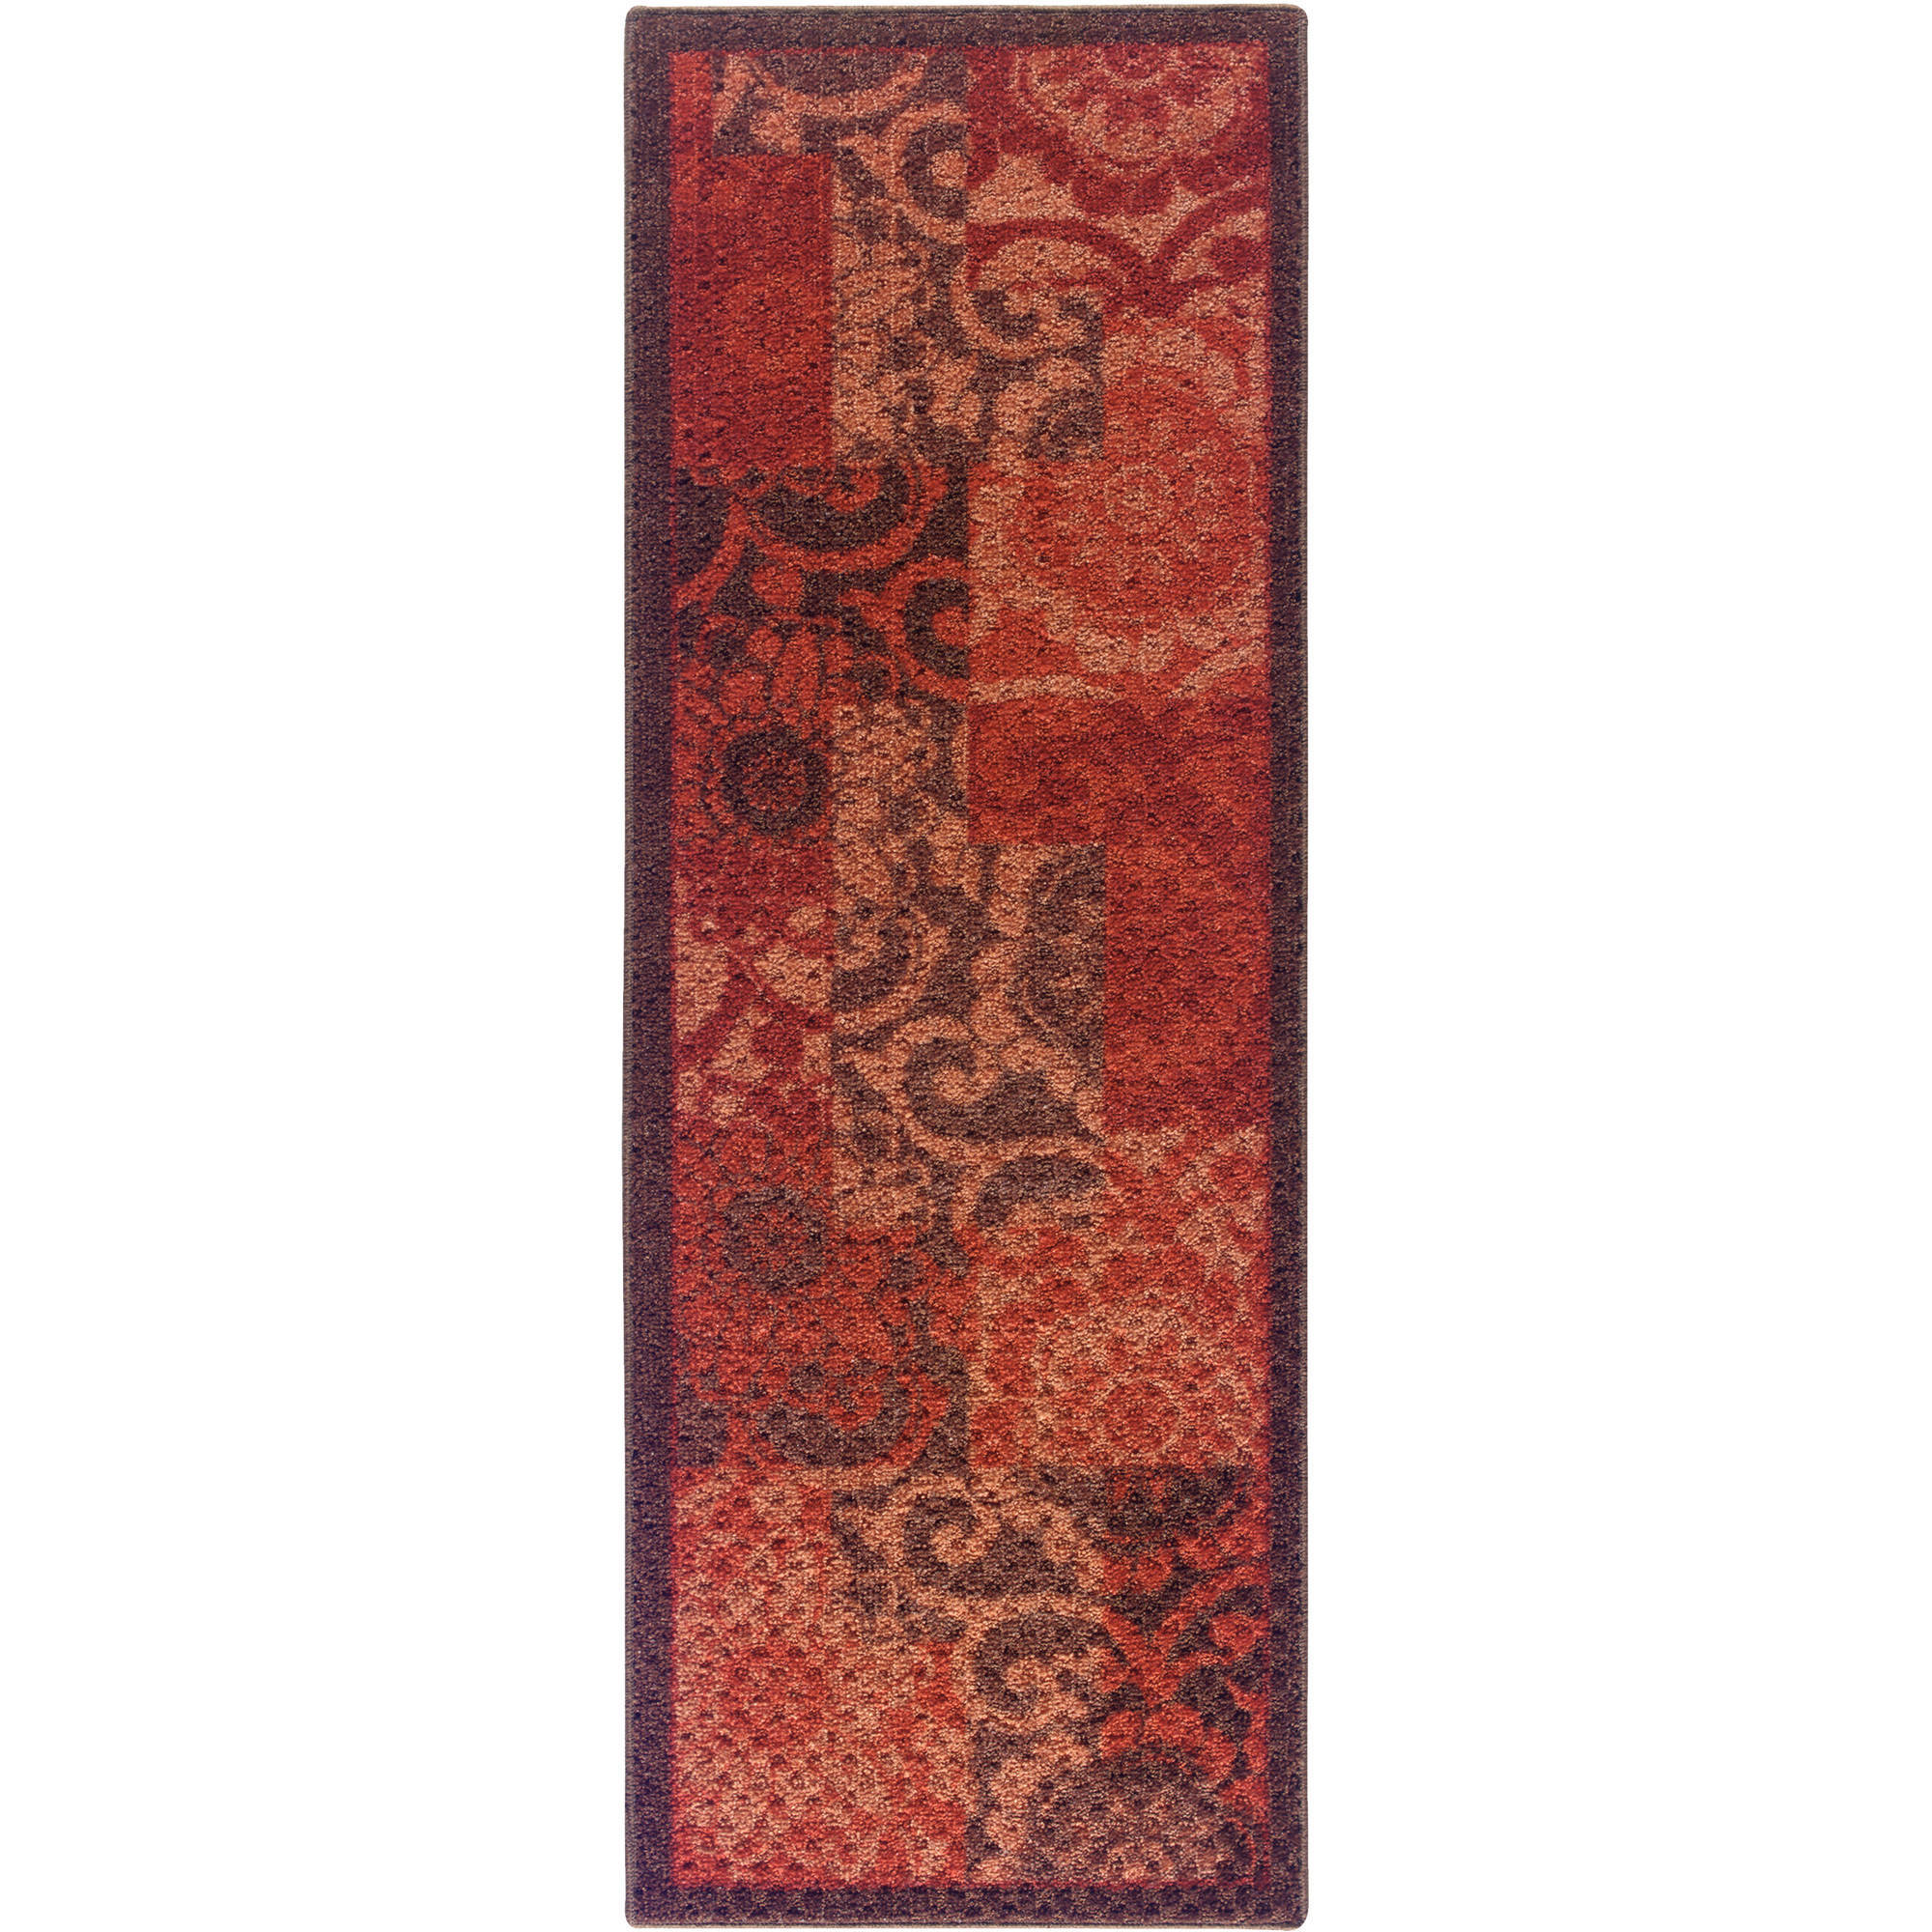 "Better Homes and Gardens Pretty Peony Textured Print Runner, 1'9"" x 5'"